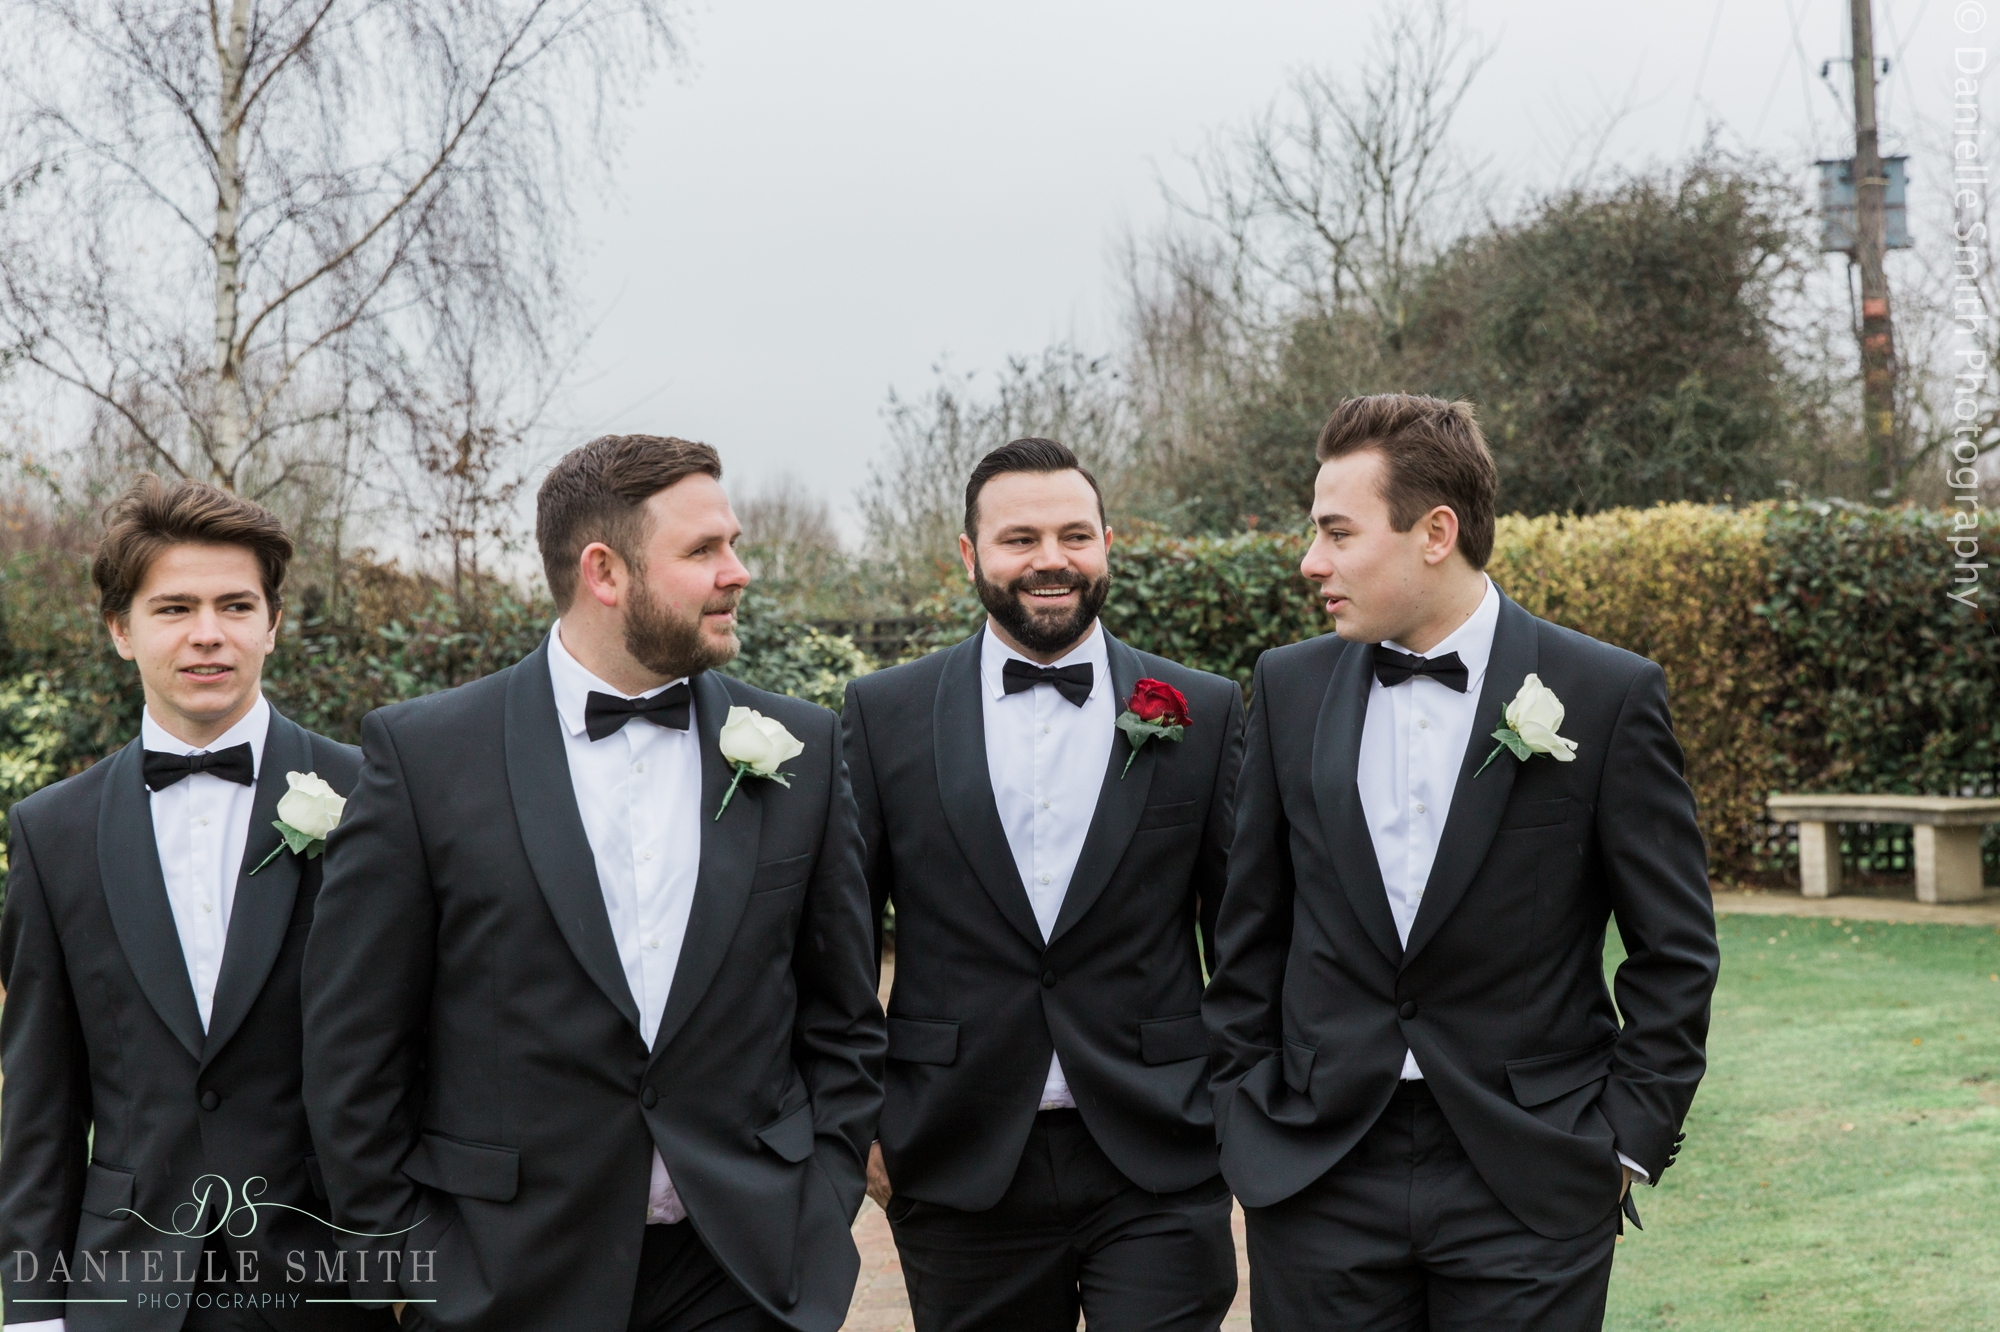 groom and groomsmen in black tuxedos - new years eve wedding